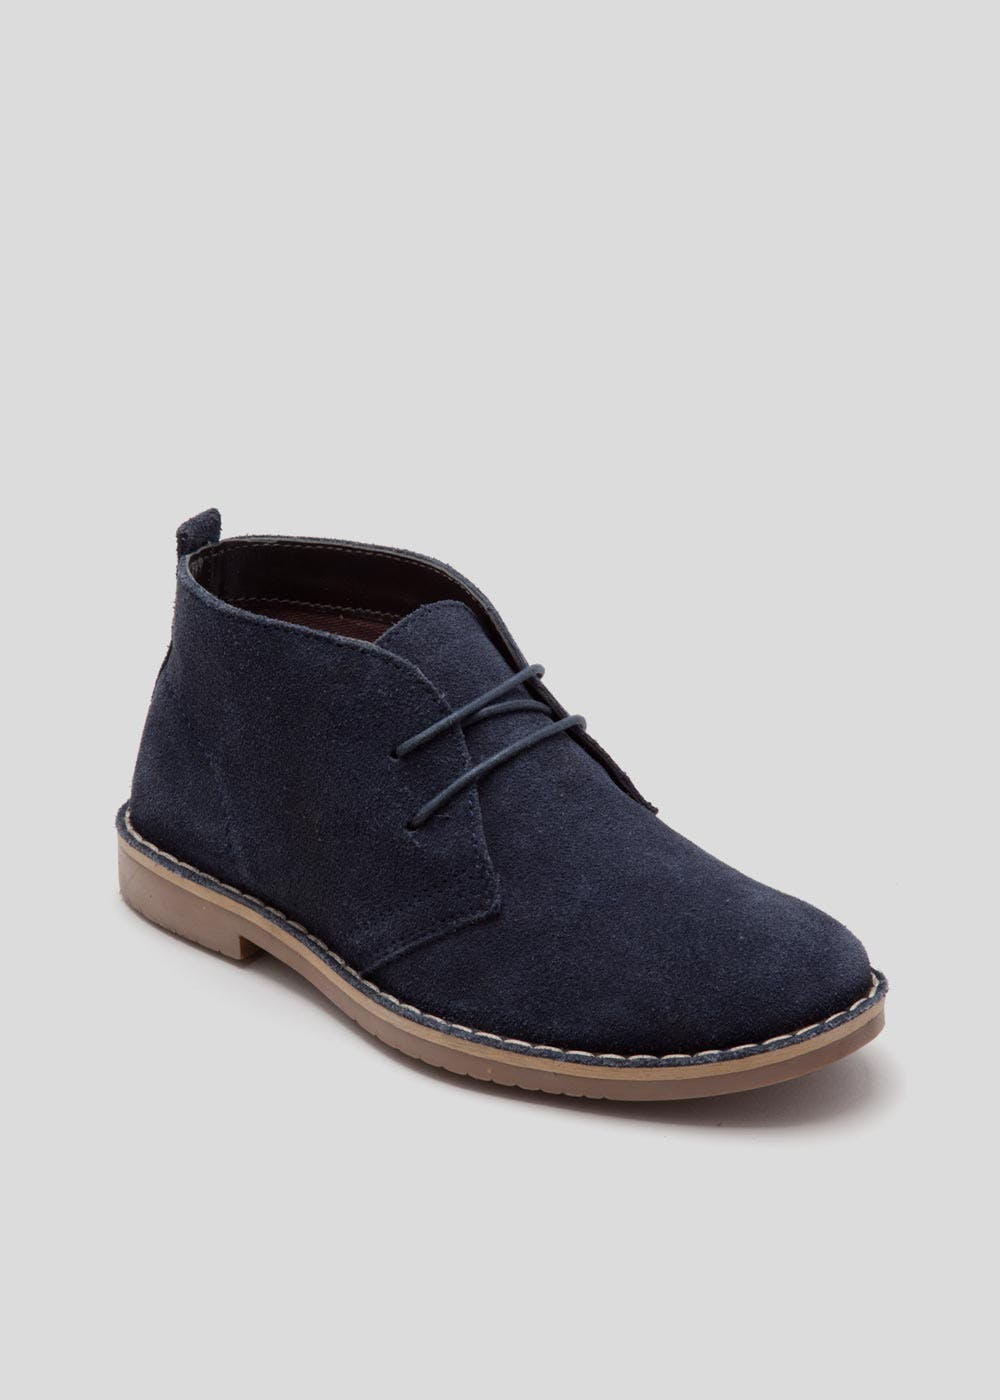 Boys Real Suede Desert Boots Younger 10 Older 6 Navy